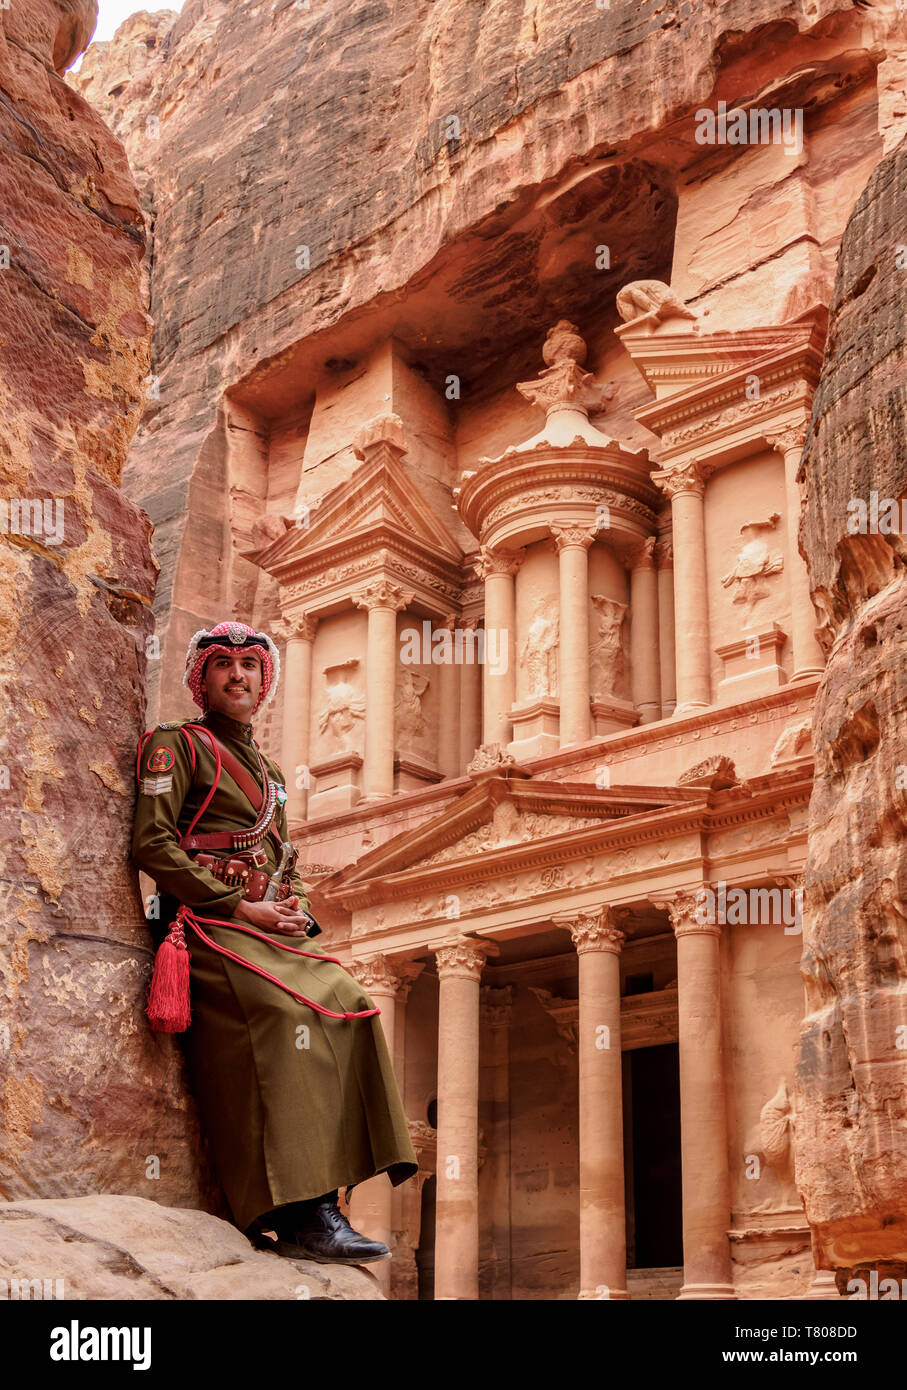 Jordanian Army Soldier in front of The Treasury (Al-Khazneh), Petra, UNESCO World Heritage Site, Ma'an Governorate, Jordan, Middle East Stock Photo